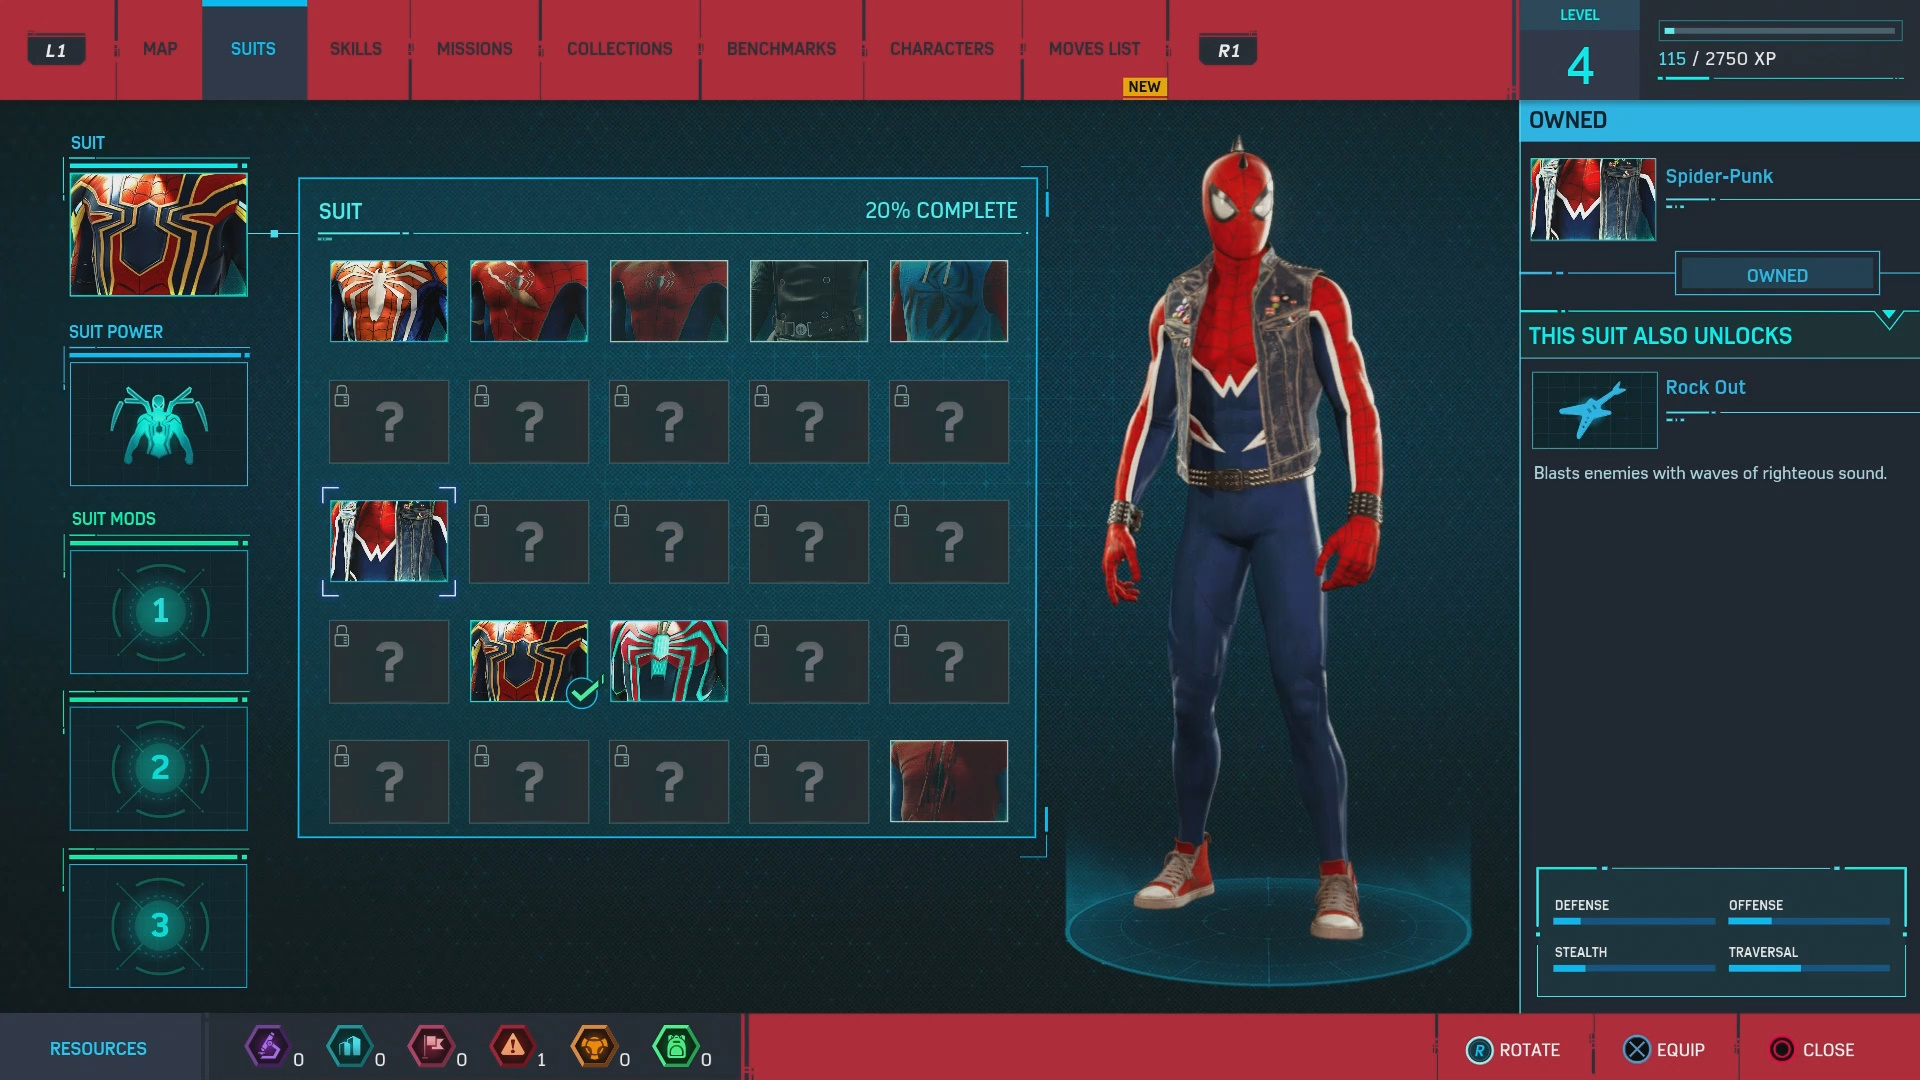 How to Access Spider-Man DLC Items